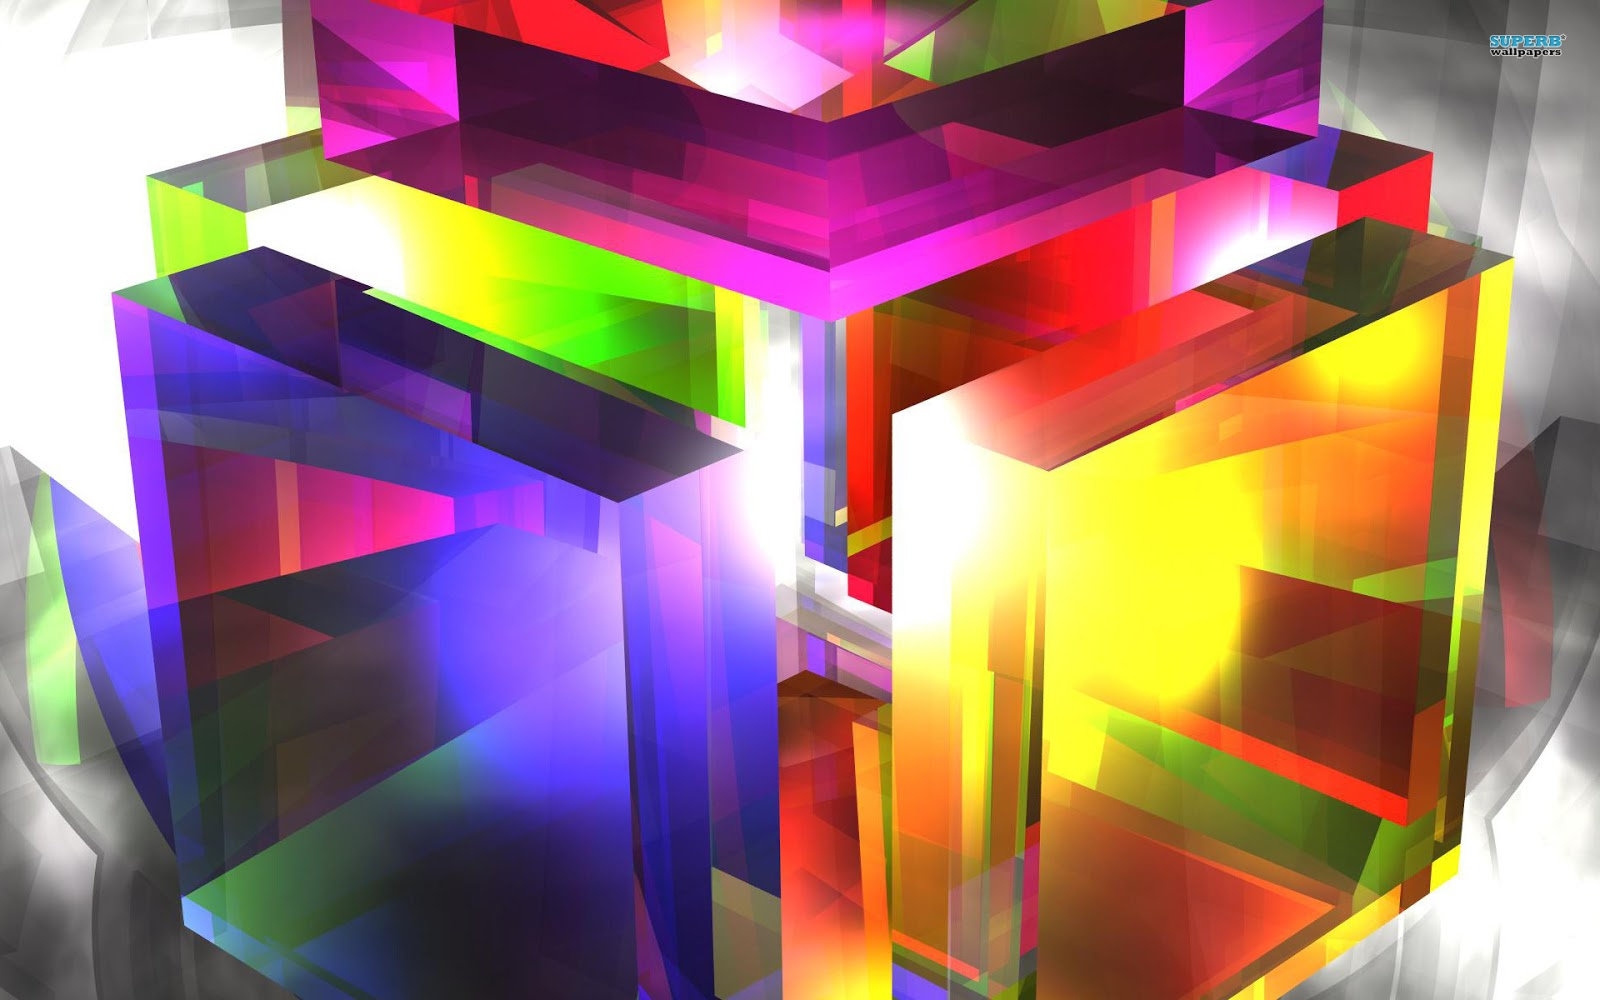 Glass 3d Hd Wallpapers 1080p: 1080p Wallpapers: Abstract Wallpapers HD